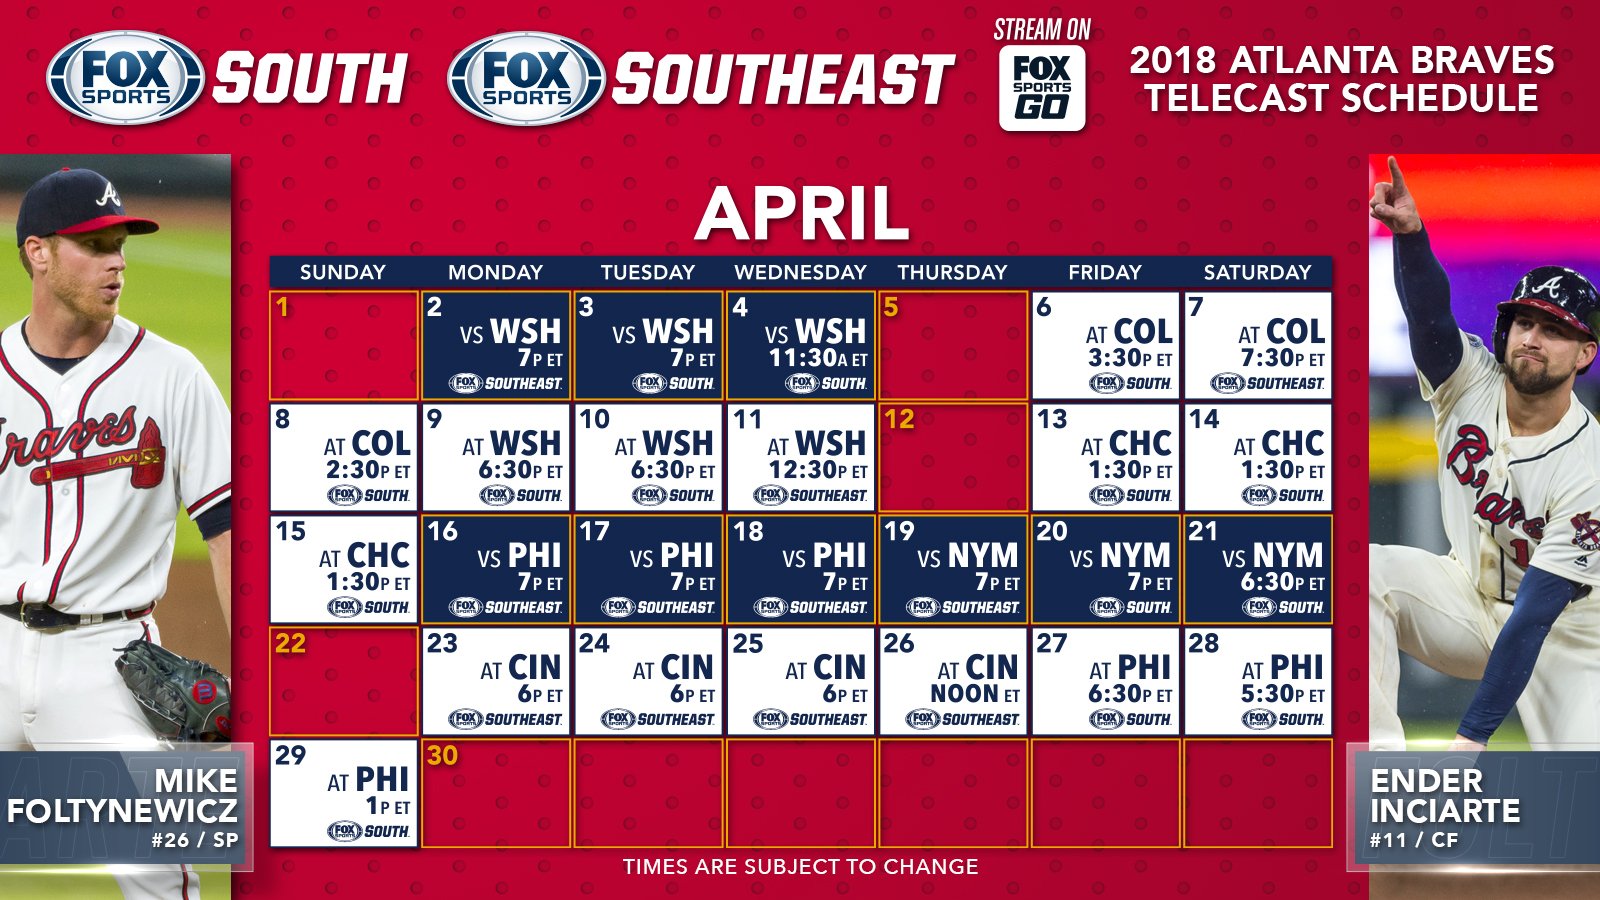 picture about Atlanta Braves Tv Schedule Printable titled Atlanta Braves Television Program: April FOX Athletics